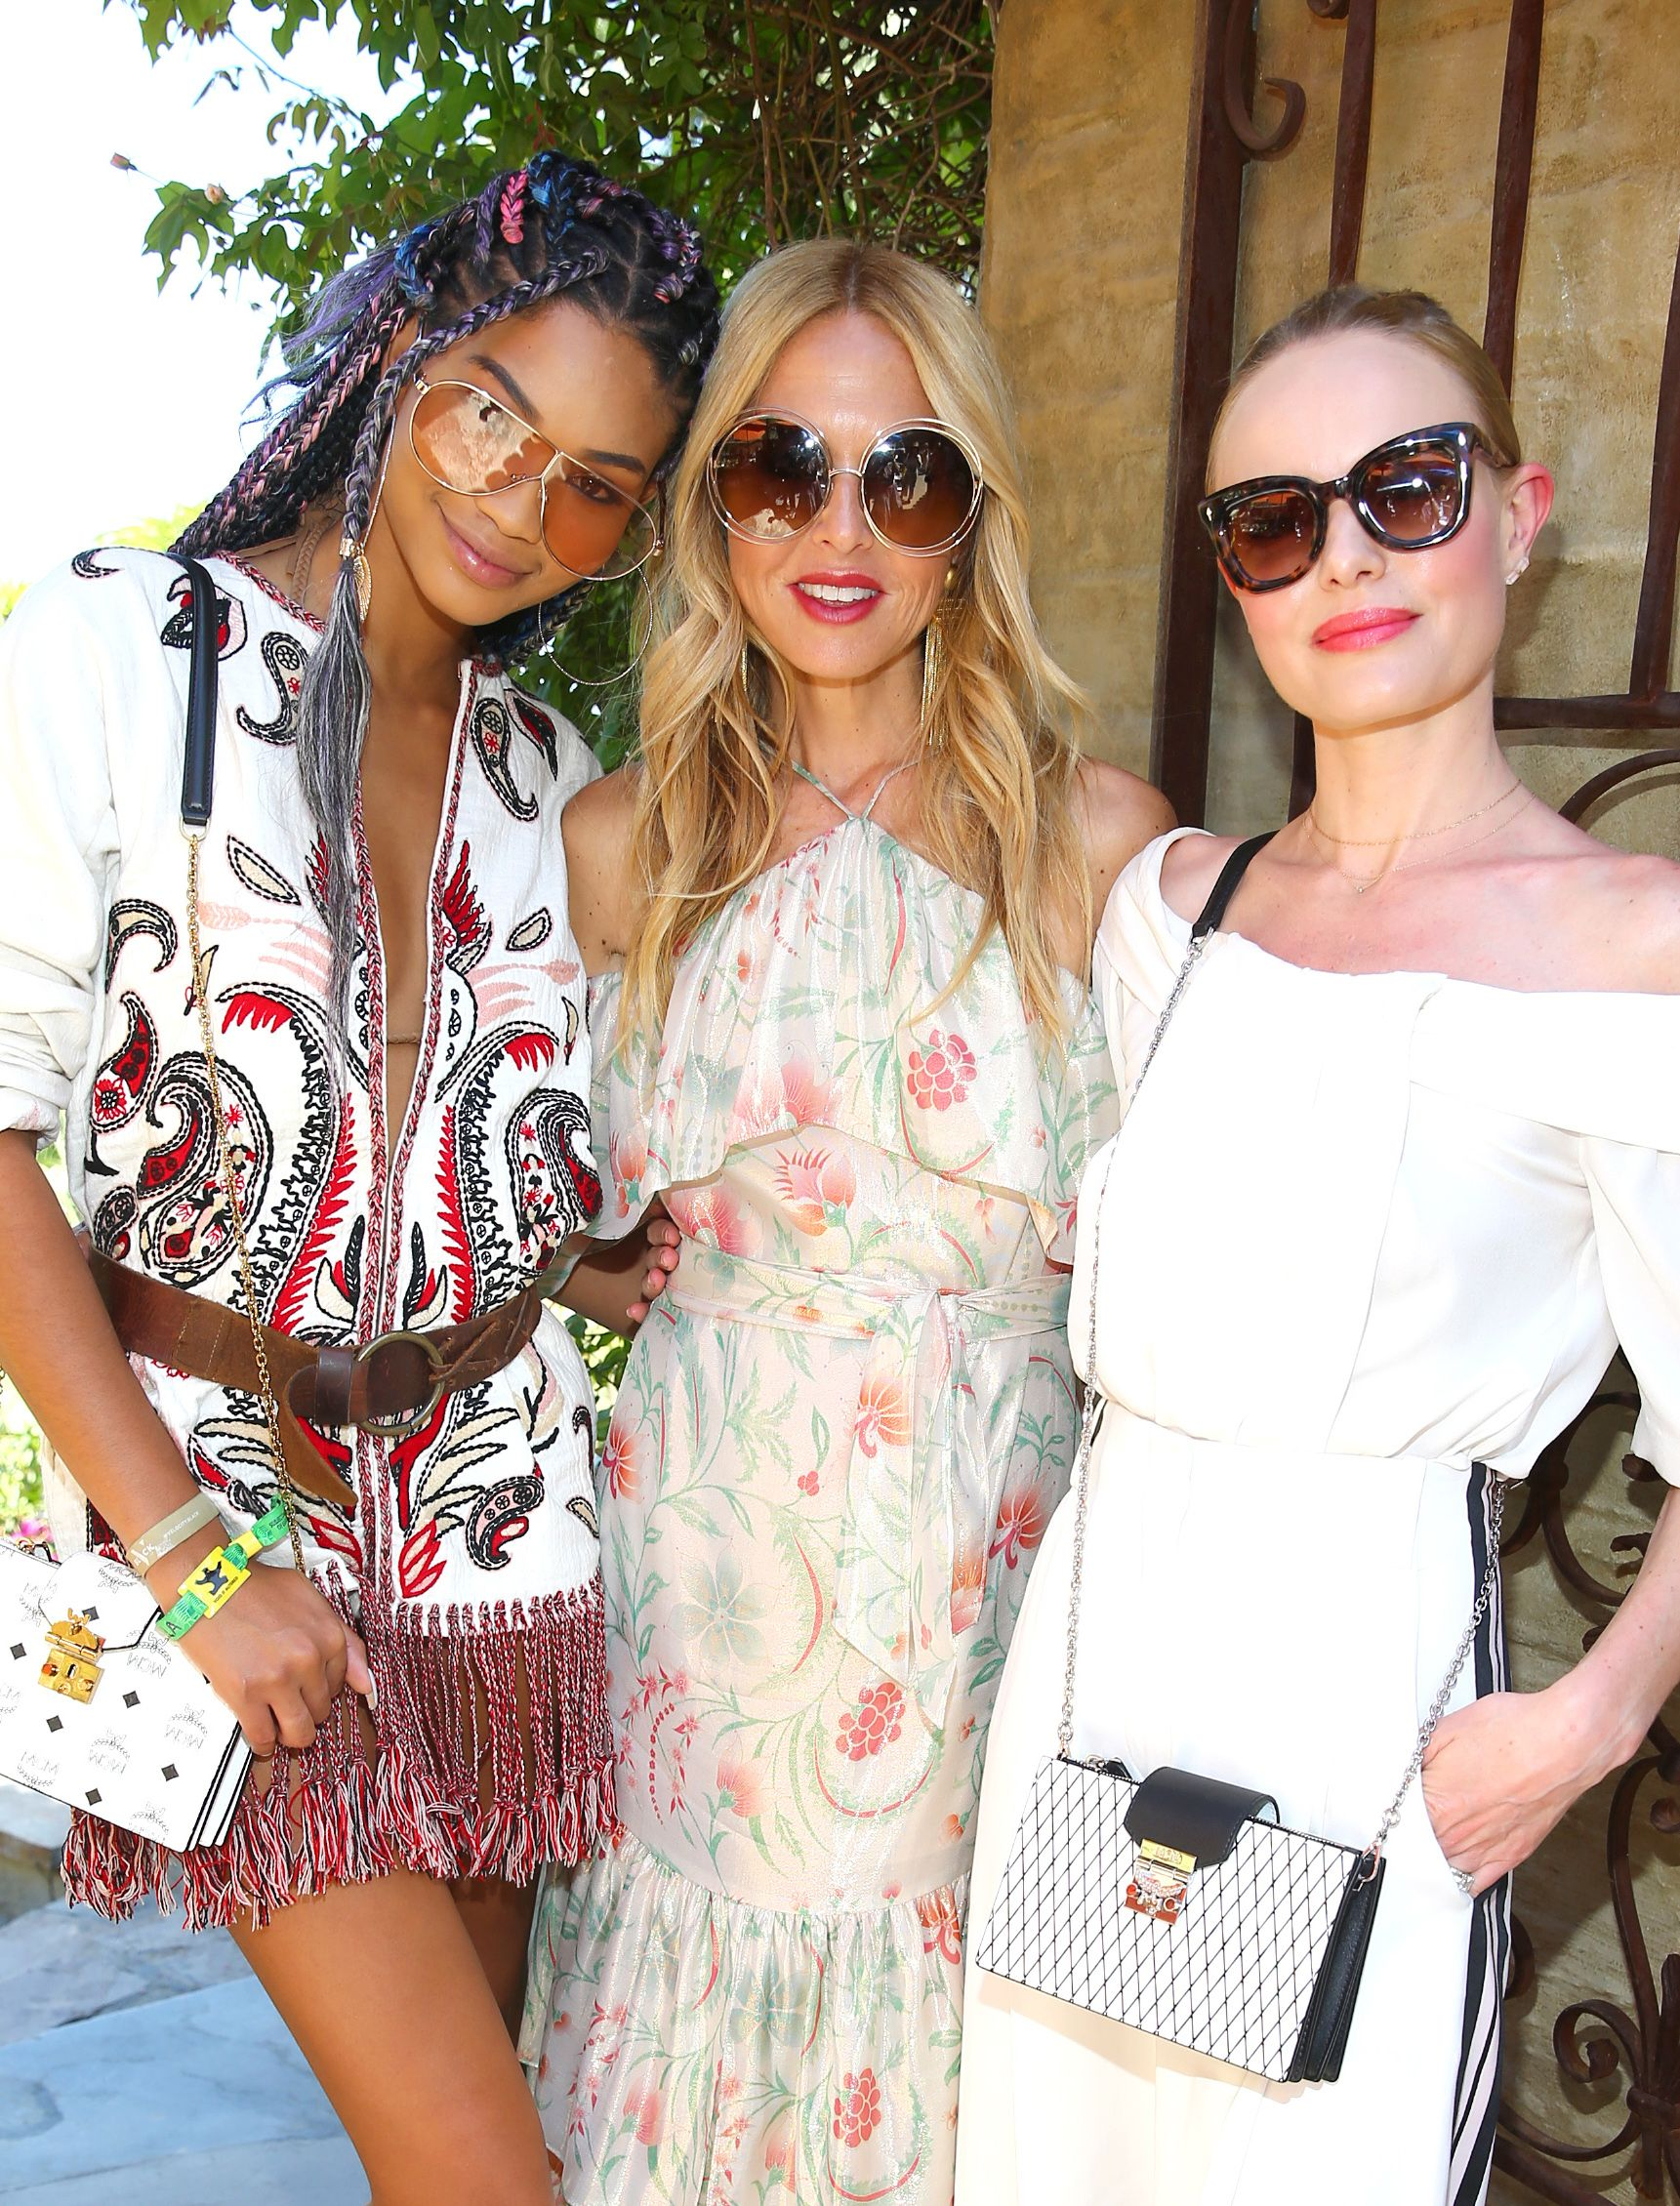 Chanel Iman, Rachel Zoe and Kate Bosworth Rachel ZOEasis, Coachella Valley Music and Arts Festival, Palm Springs, USA - 15 Apr 2017